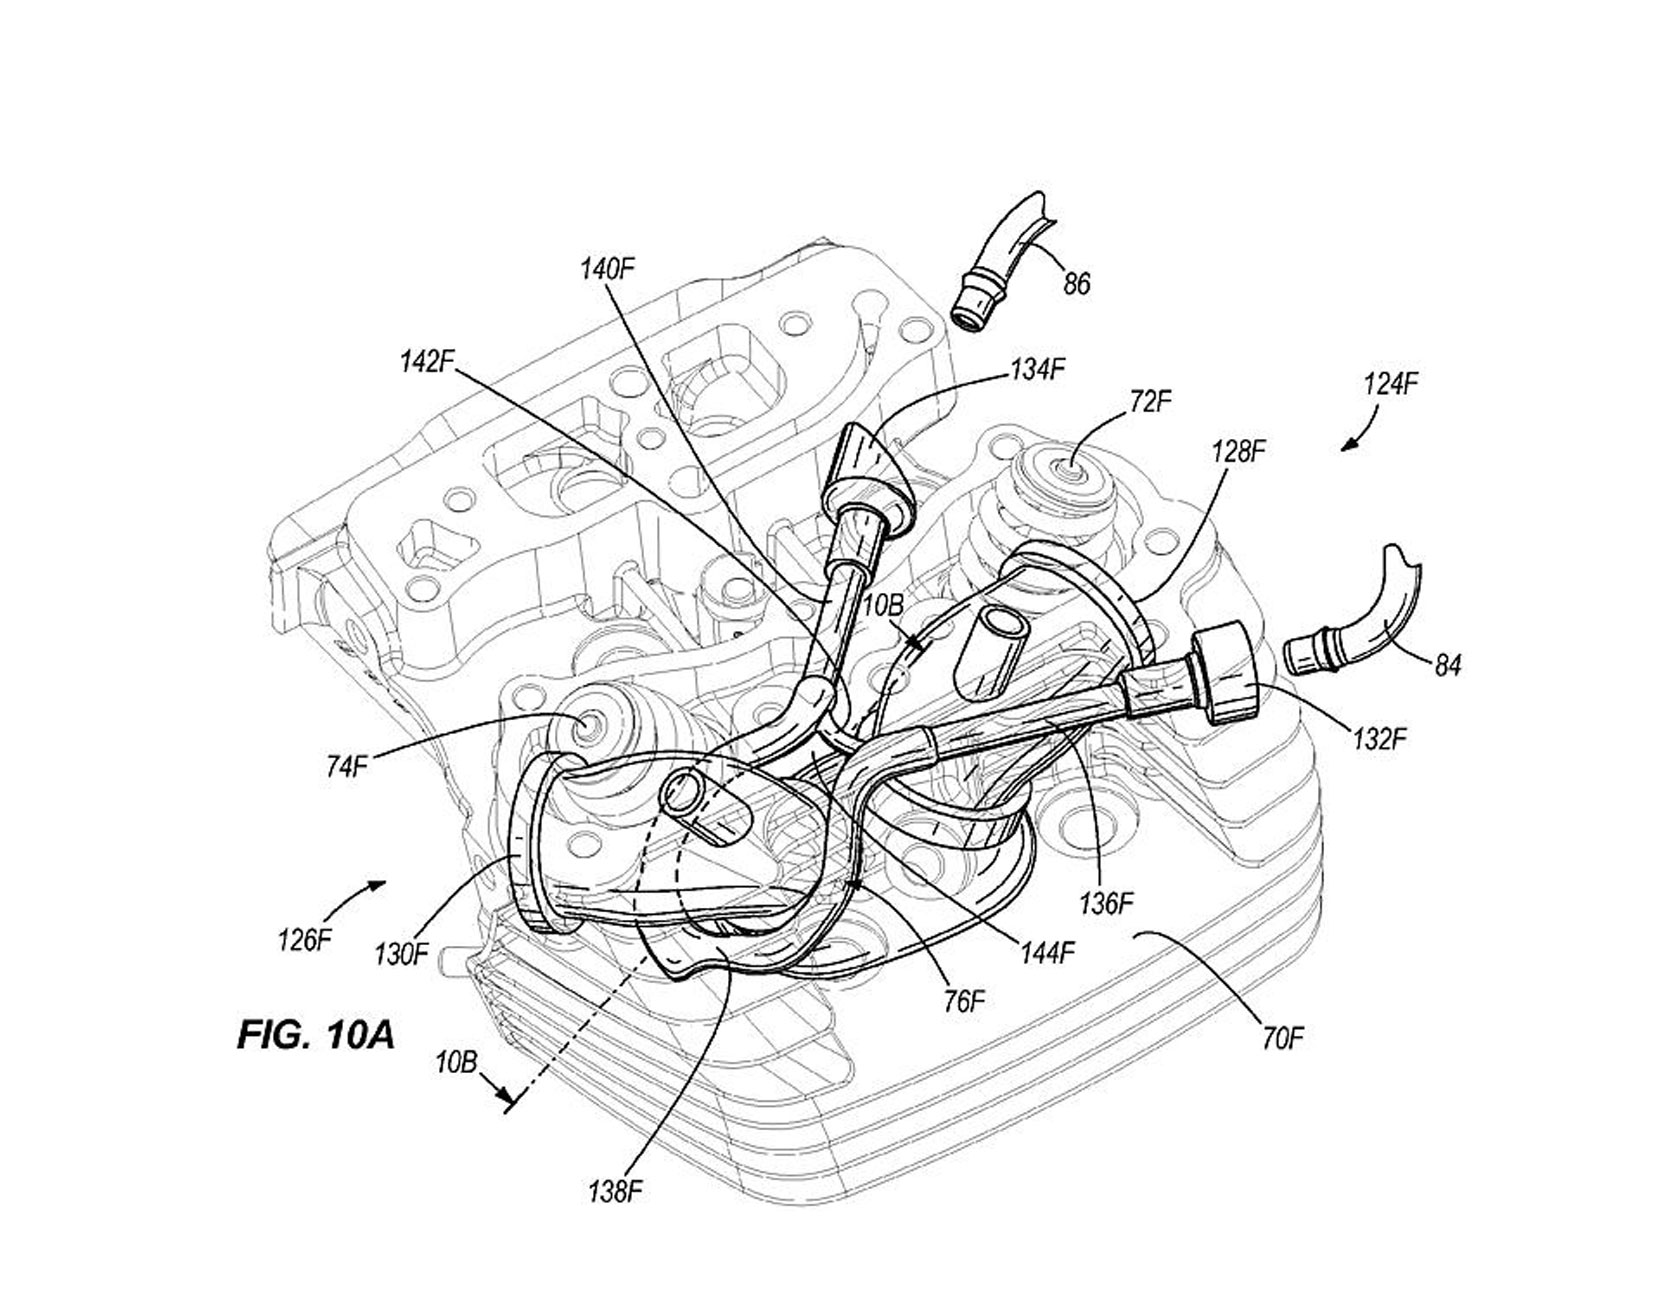 harley davidson wiring harness connectors with Harley Engine Parts Diagram on Harley Engine Parts Diagram additionally Honda Msx 125 Wiring Diagram further 1999 Harley Softail Wiring Harness  plete in addition Ford Wiring Harness For Multiport Efi Engine Management System additionally SOLVED Need Vacuum Diagram For.